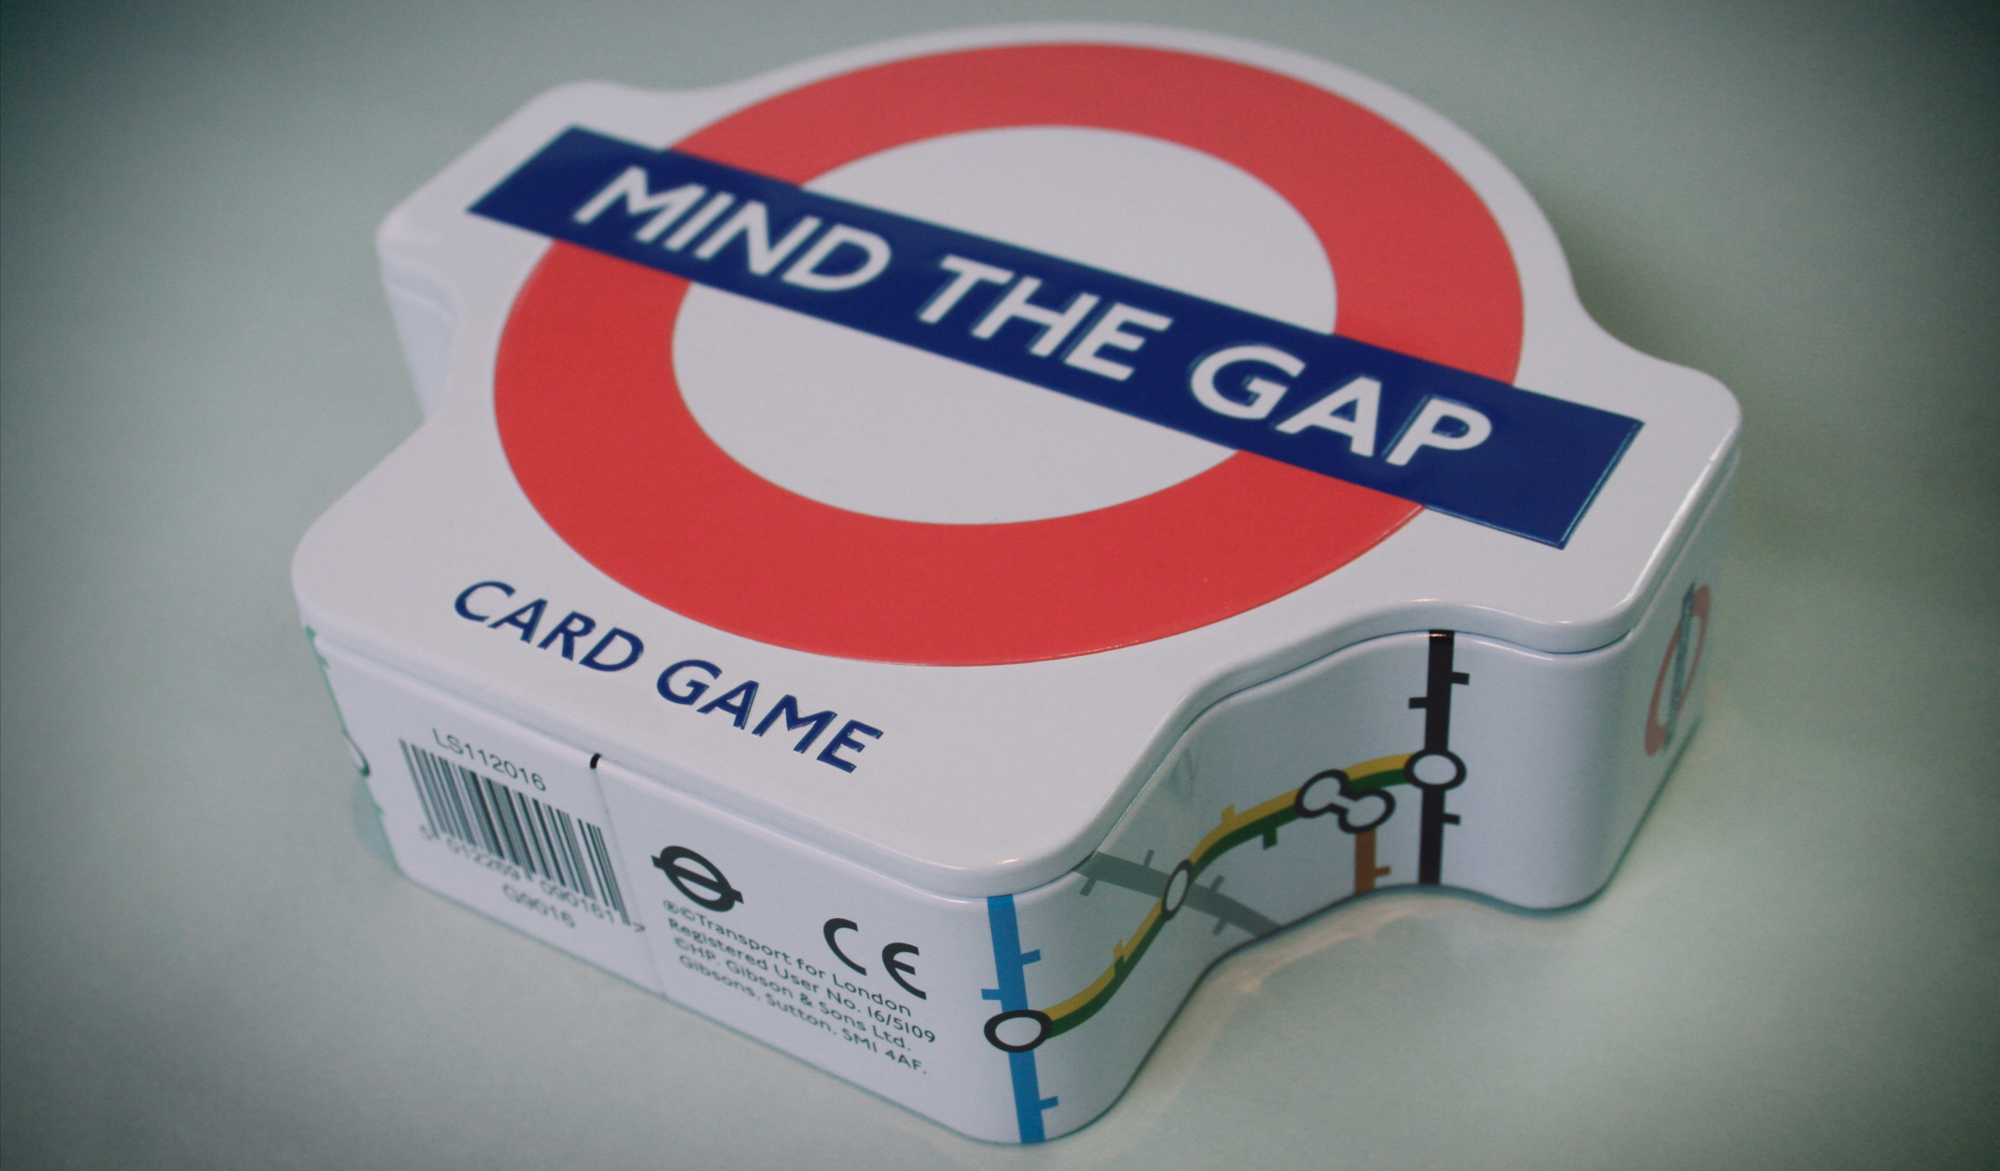 Mind the Gap front